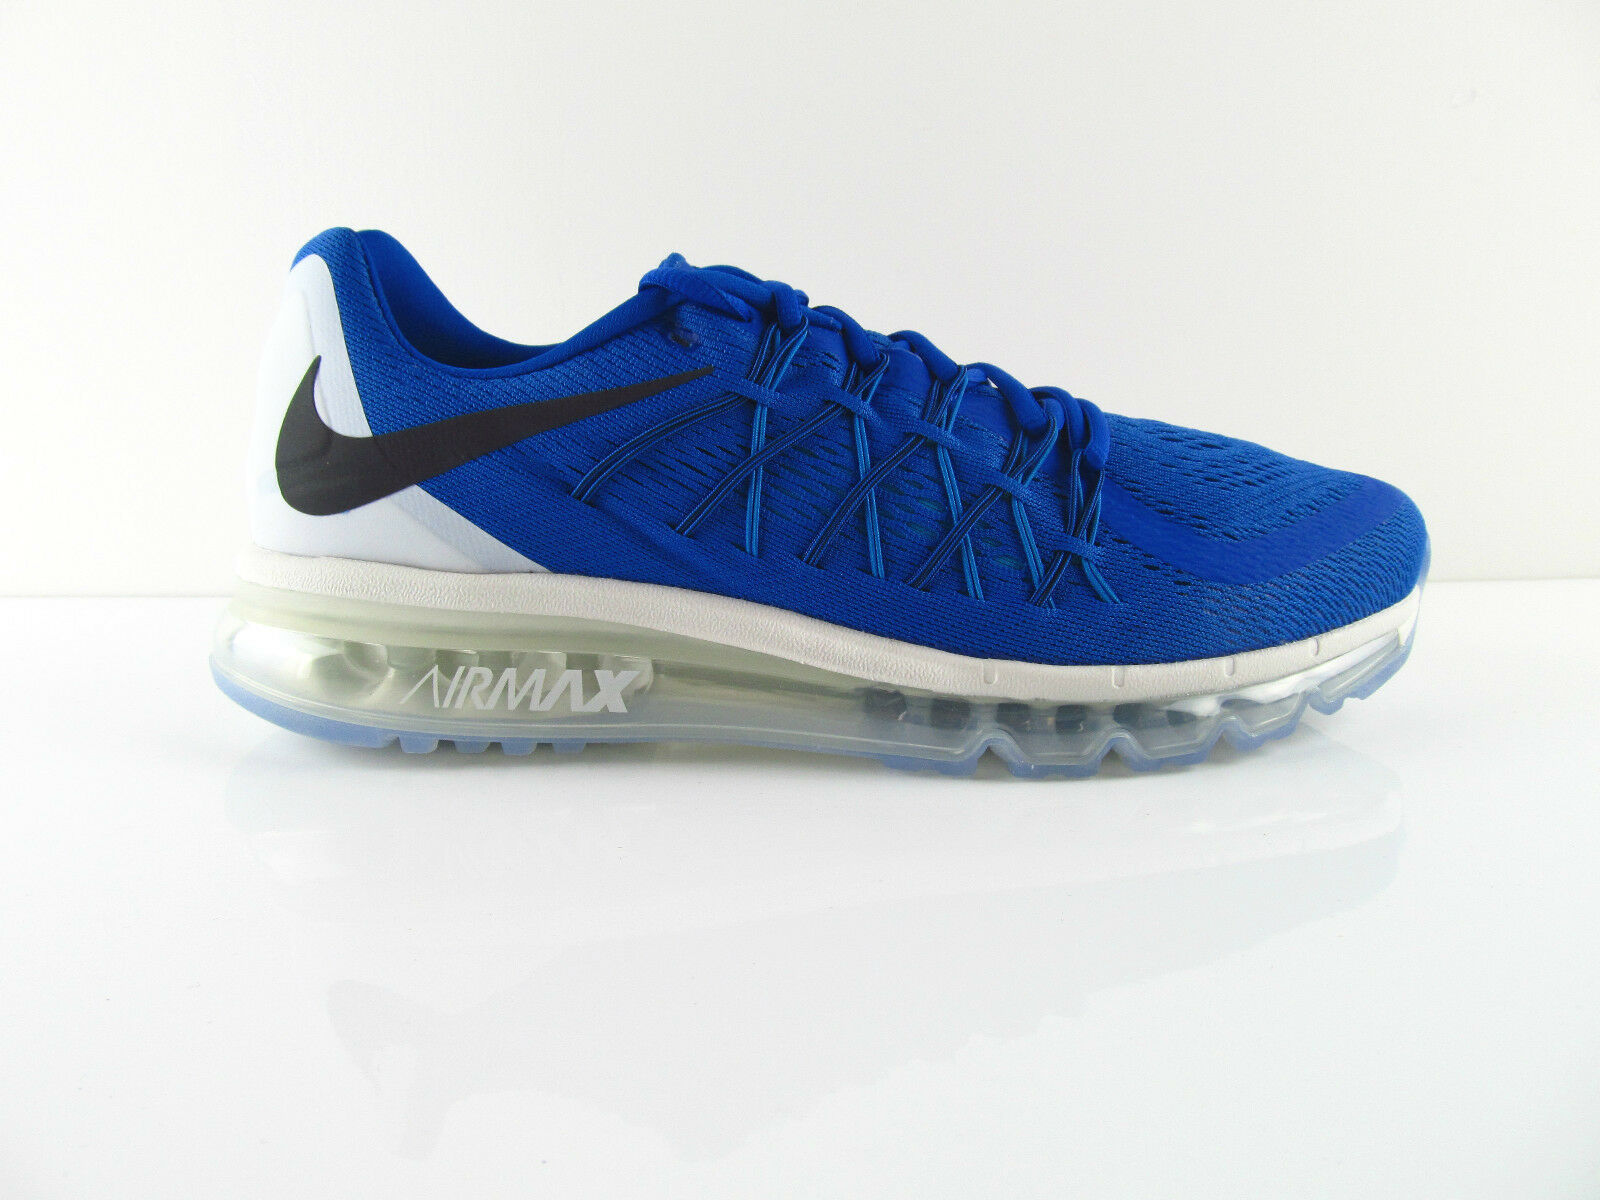 Nike Air Max 2015 Game Royal Blau Lagoon MultiFarbe Running Running Running Eur 40 44 45 559fab